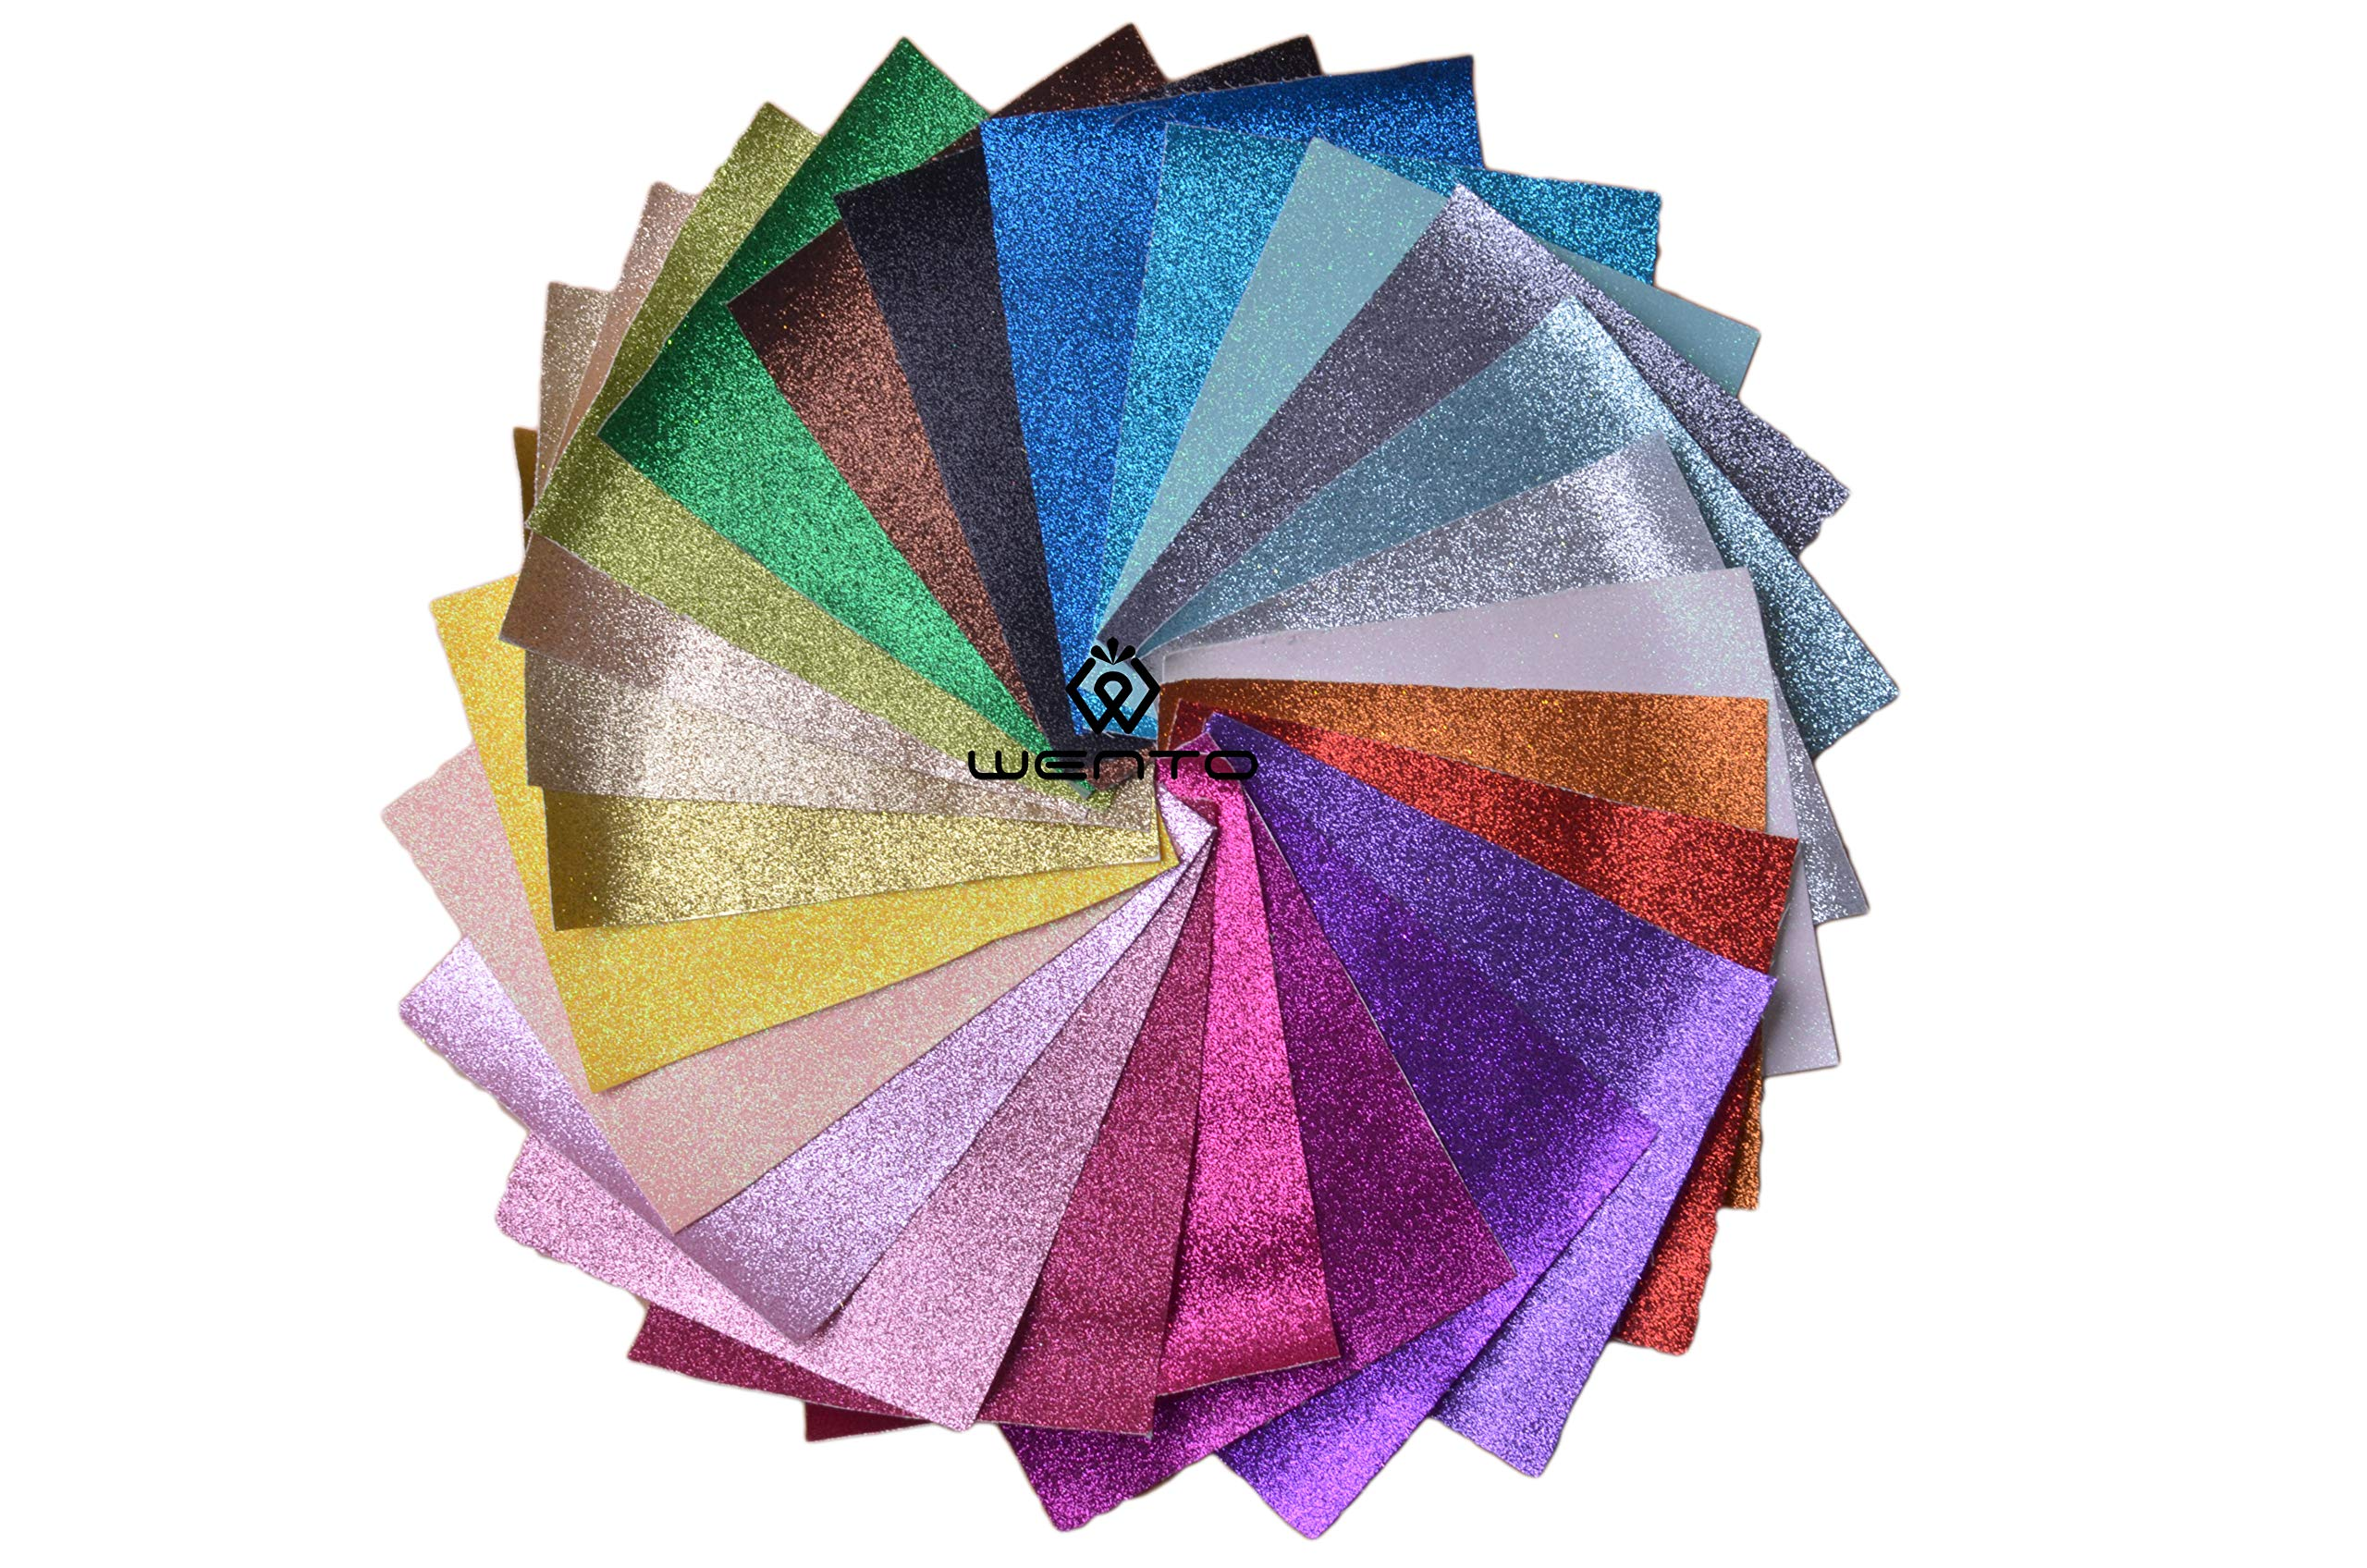 WENTO Assorted Colors 25pcs 8'' x 12'' (20cm x 30cm) Sparkly Superfine Glitter Fabric,glitter fabric sheets For Patchwork Sewing DIY Craft Glitter Fabric Convas on reverse